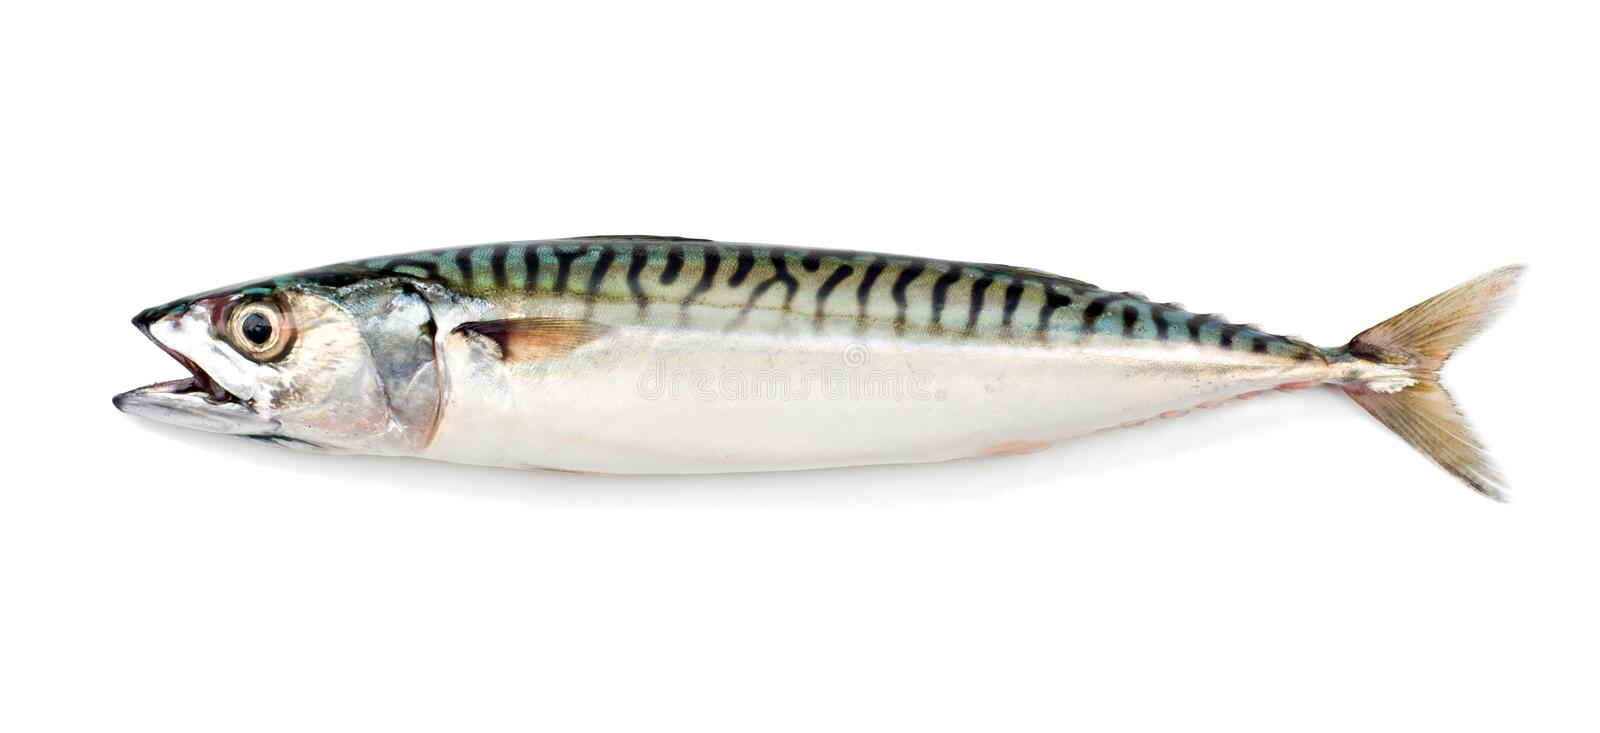 Mackerel Fish royalty free stock photography